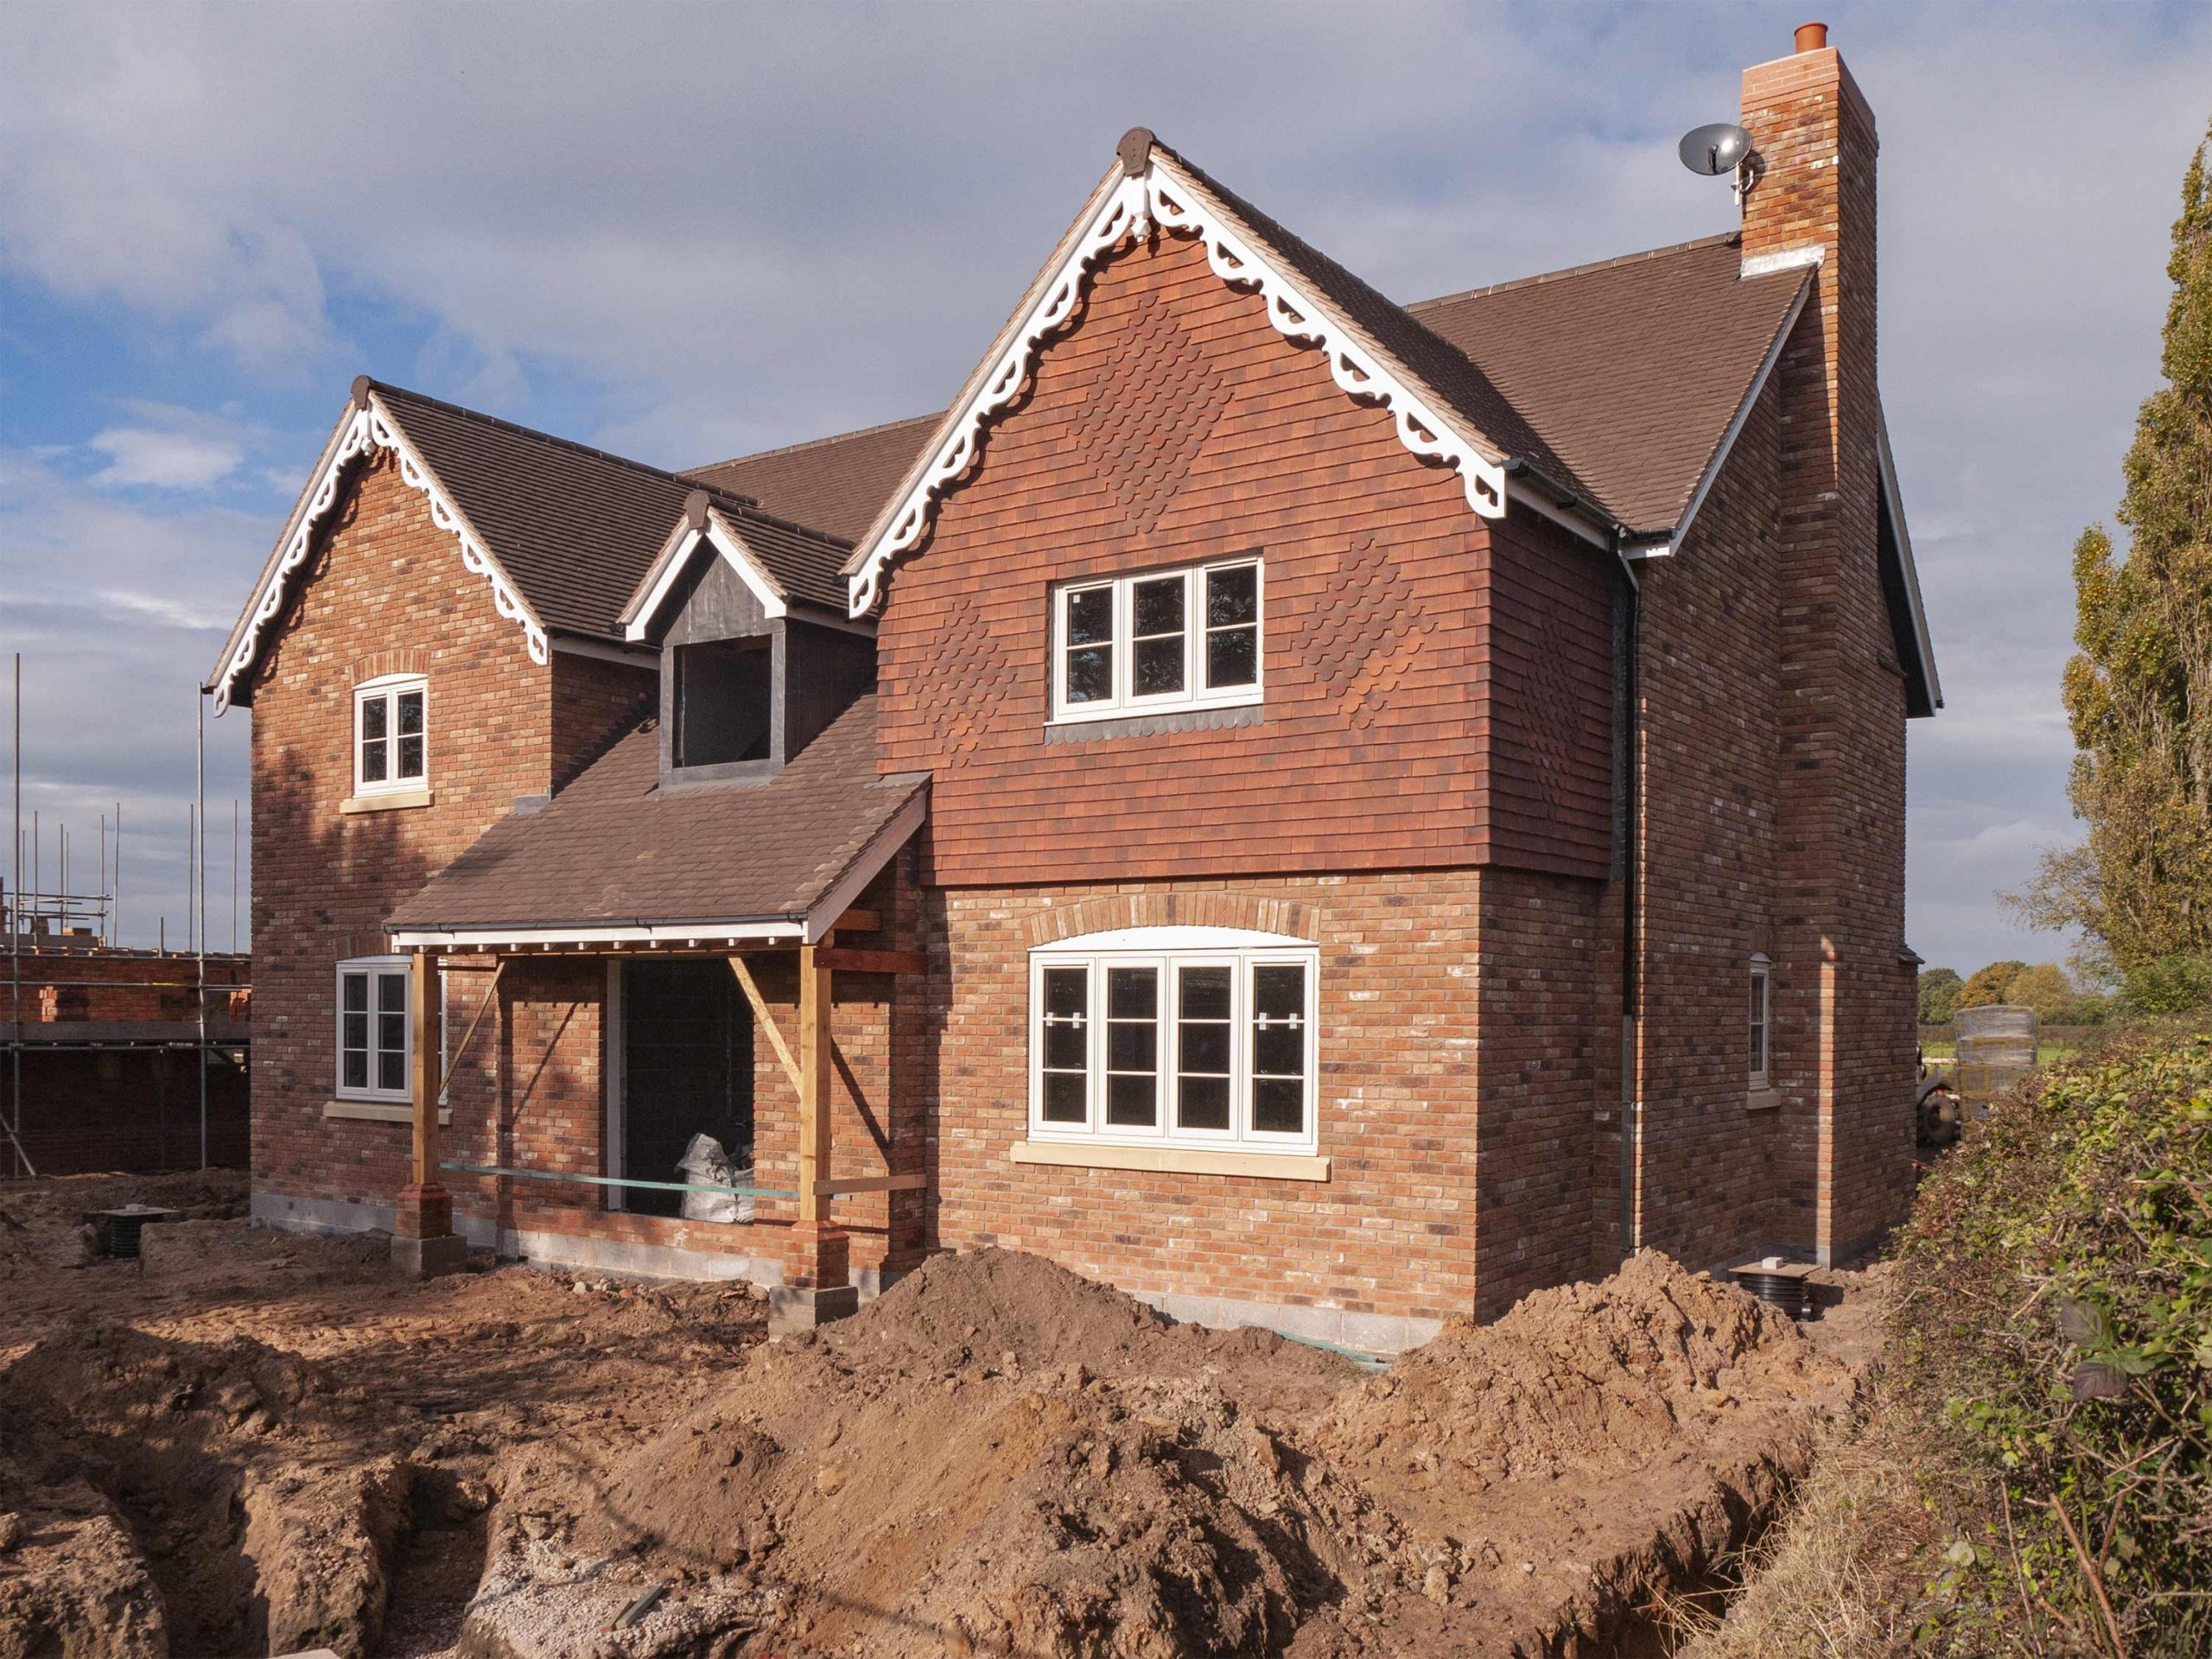 Bespoke Design and Build Construction Company